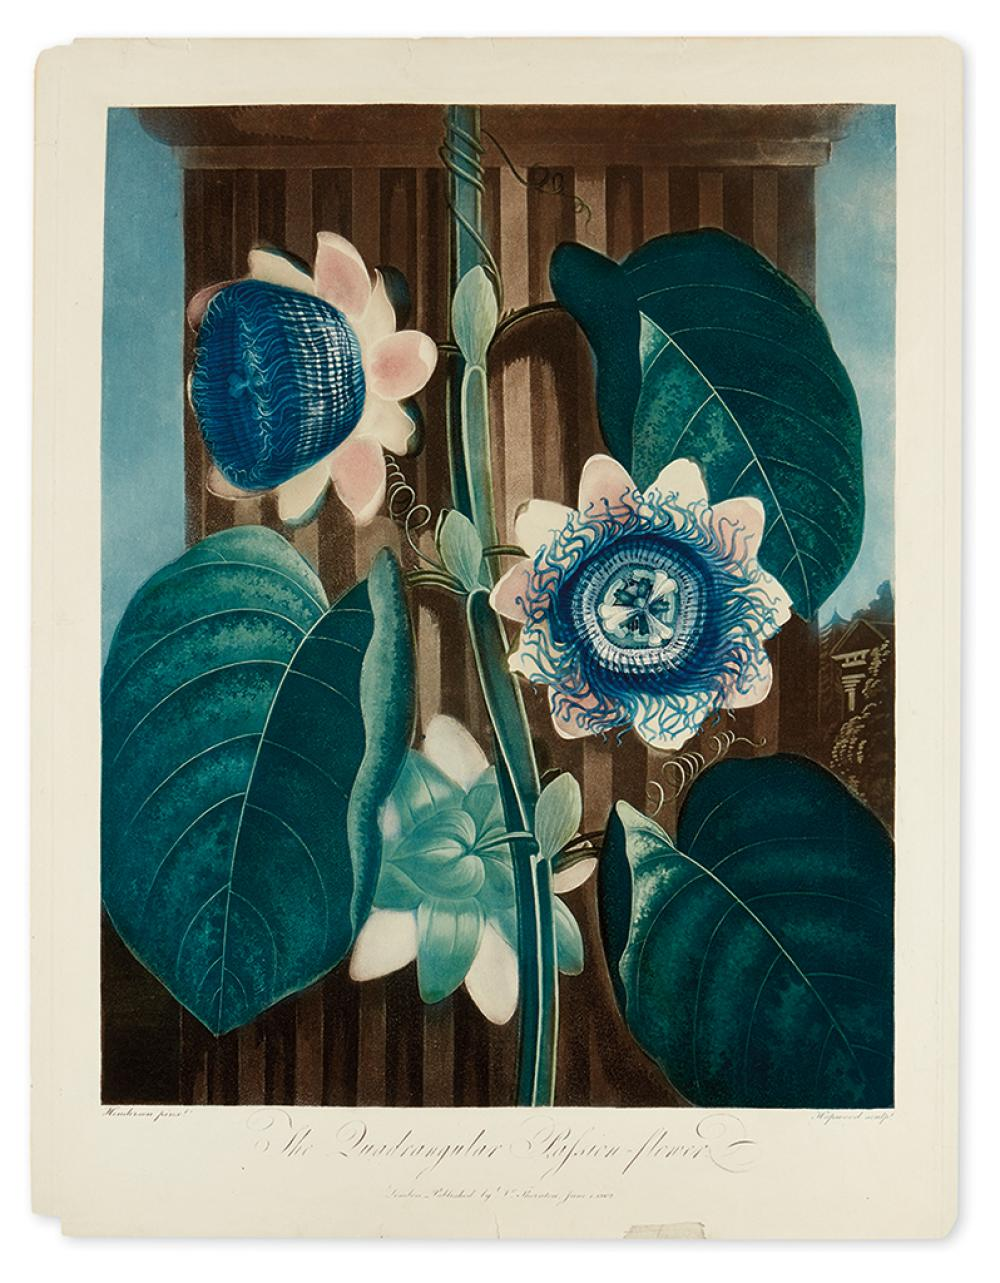 THORNTON, ROBERT JOHN. The Quadrangular Passion-Flower.